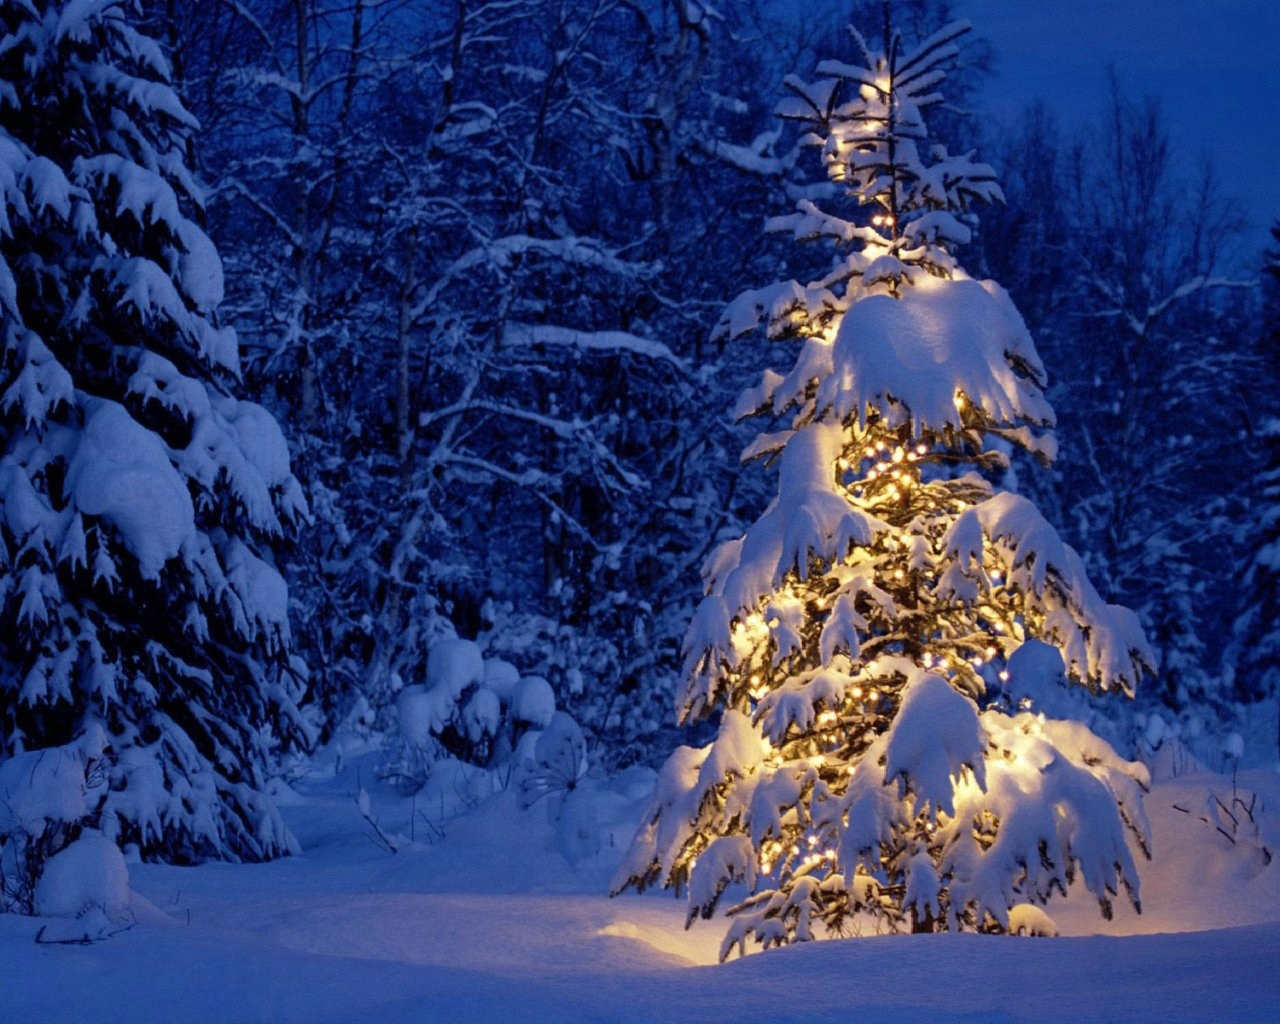 8704 download wallpaper Holidays, Landscape, Winter, Trees, New Year, Snow, Fir-Trees, Christmas, Xmas screensavers and pictures for free